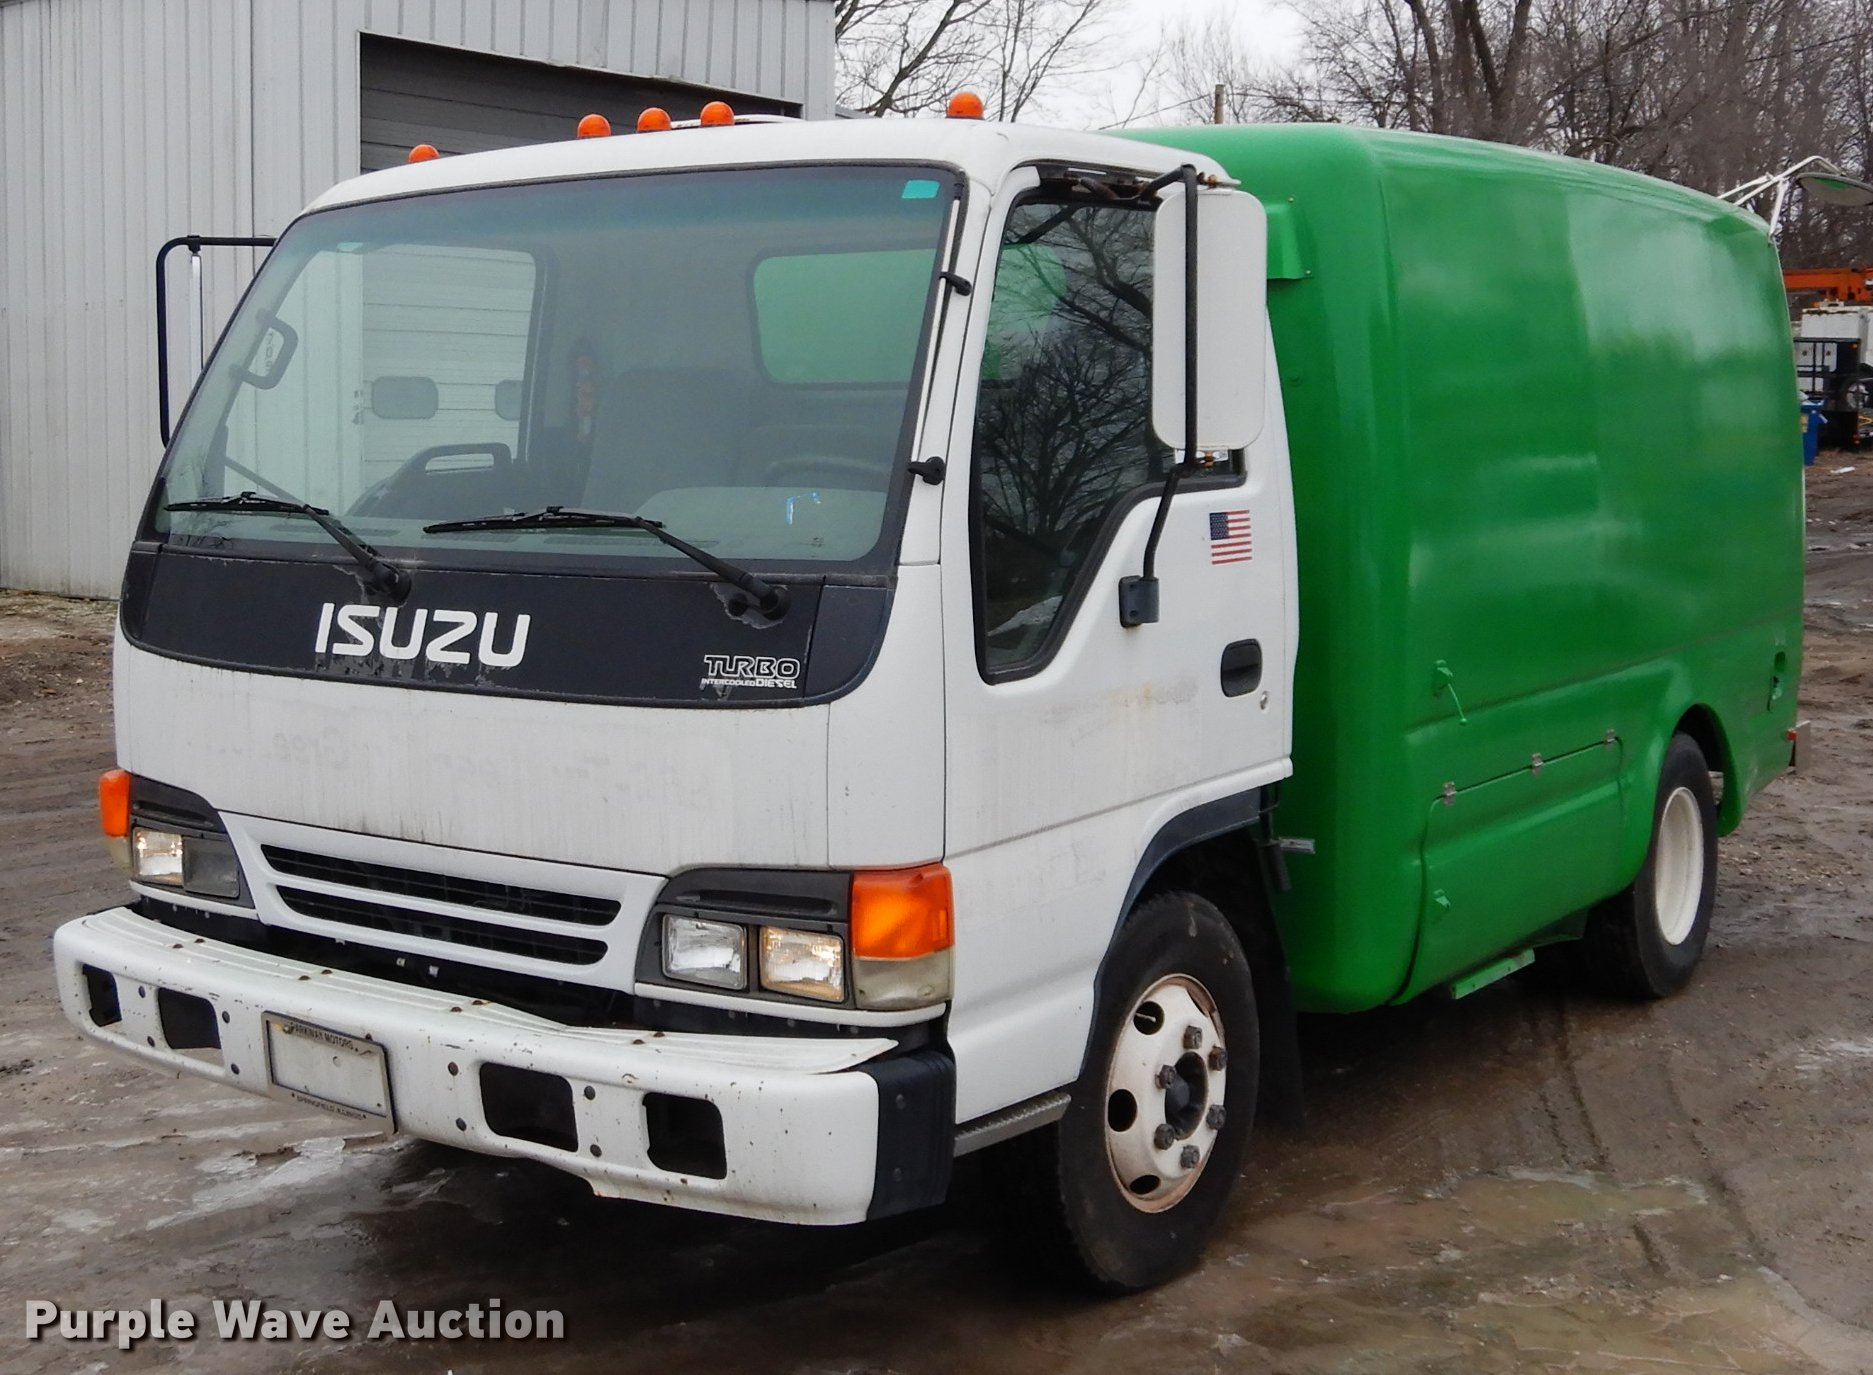 2004 Isuzu NPR box truck | Item DC8745 | Wednesday March 13